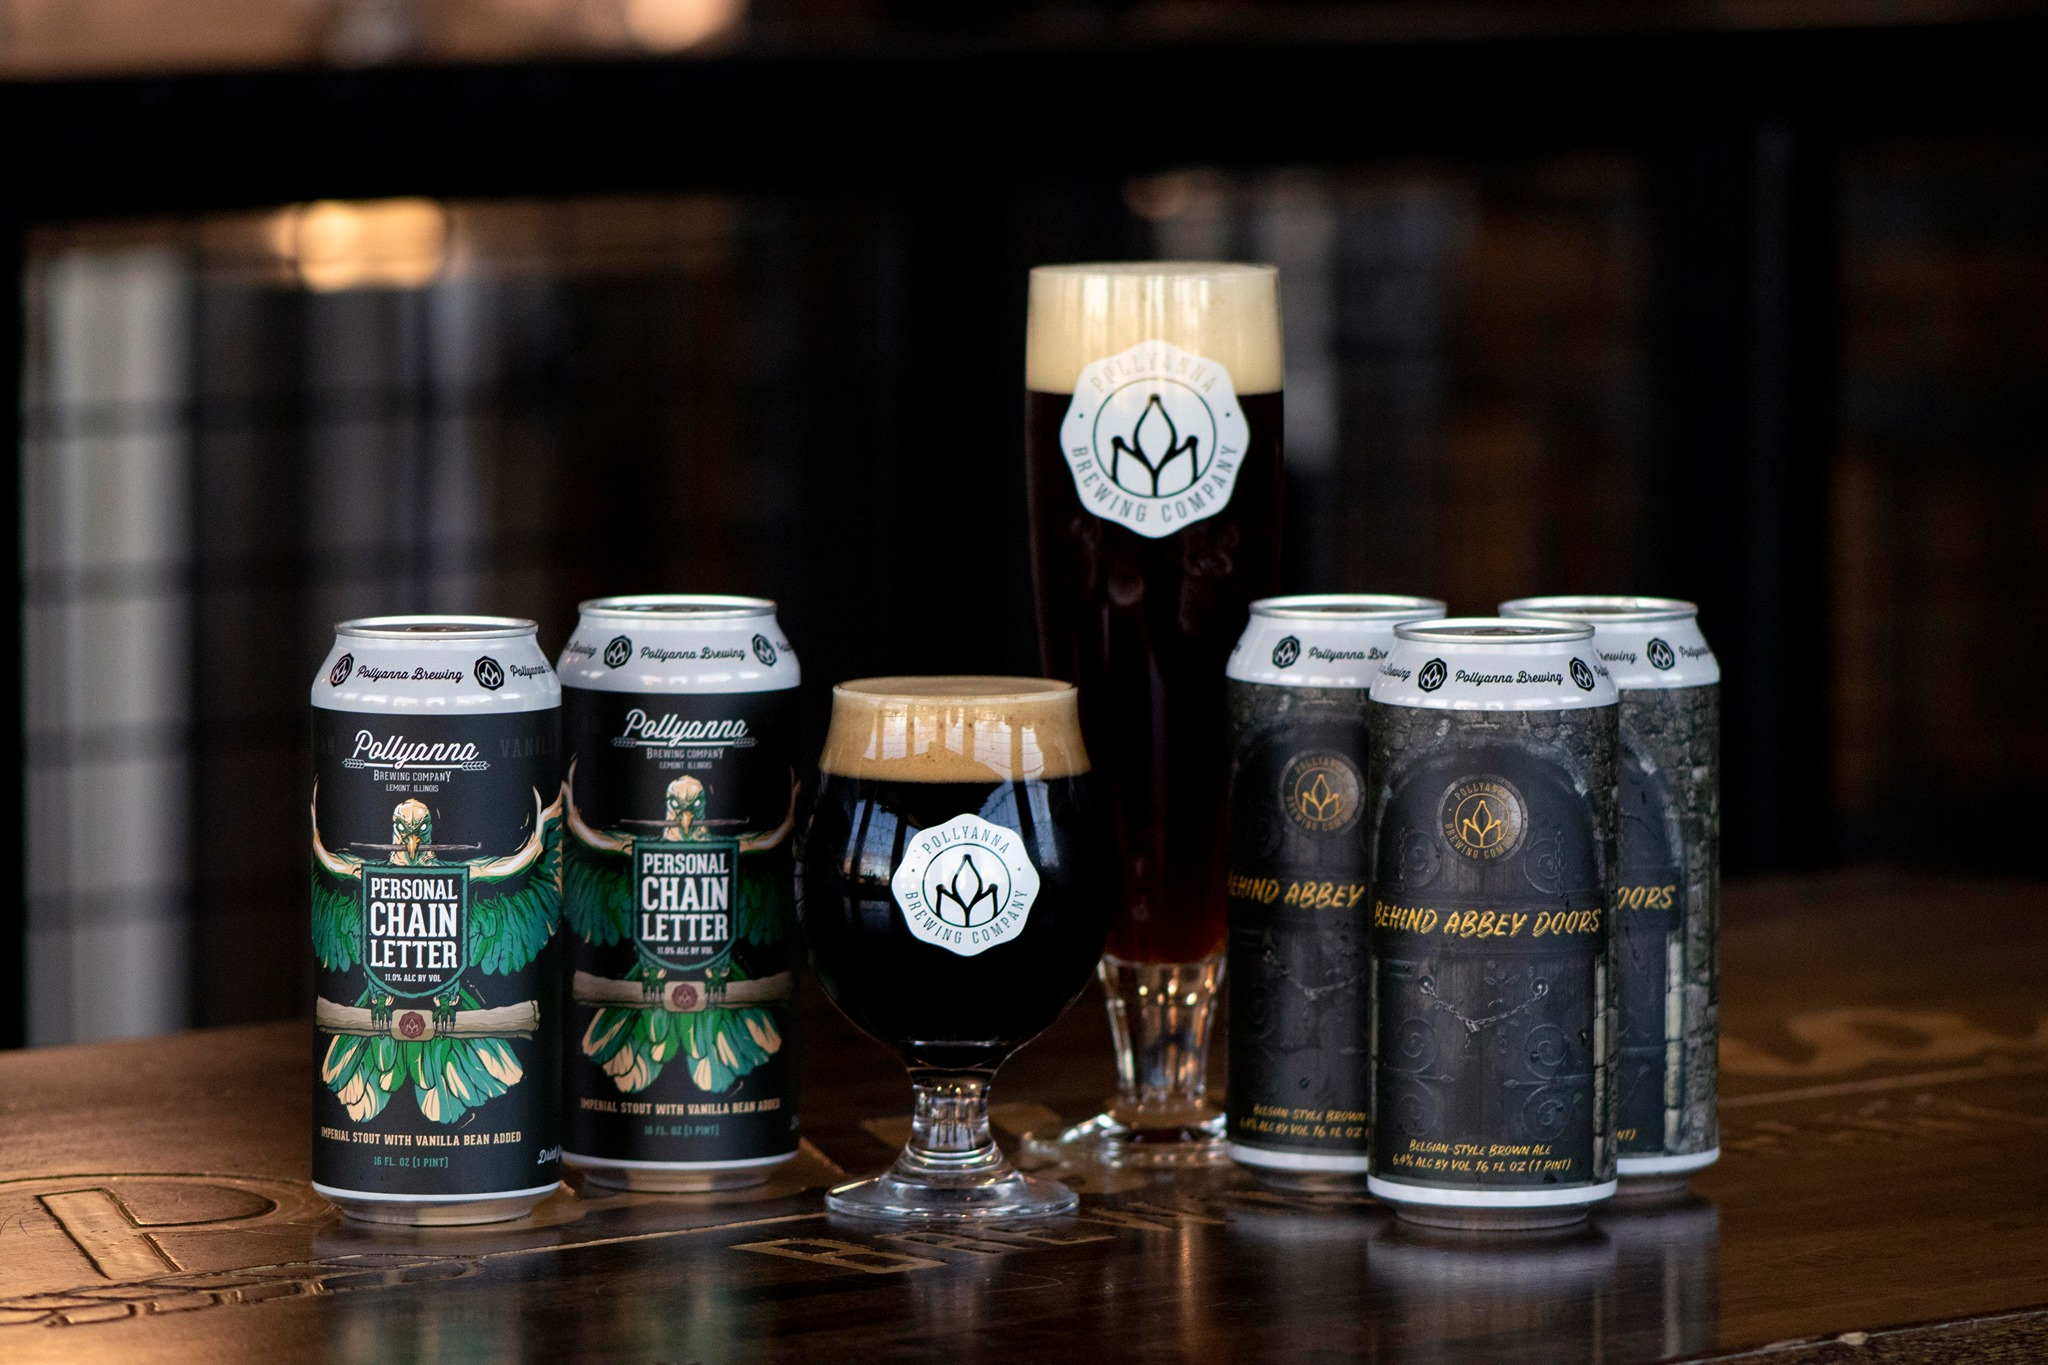 Cans of Personal Chain Letter and Behind Abbey Doors from Pollyanna Brewing Company